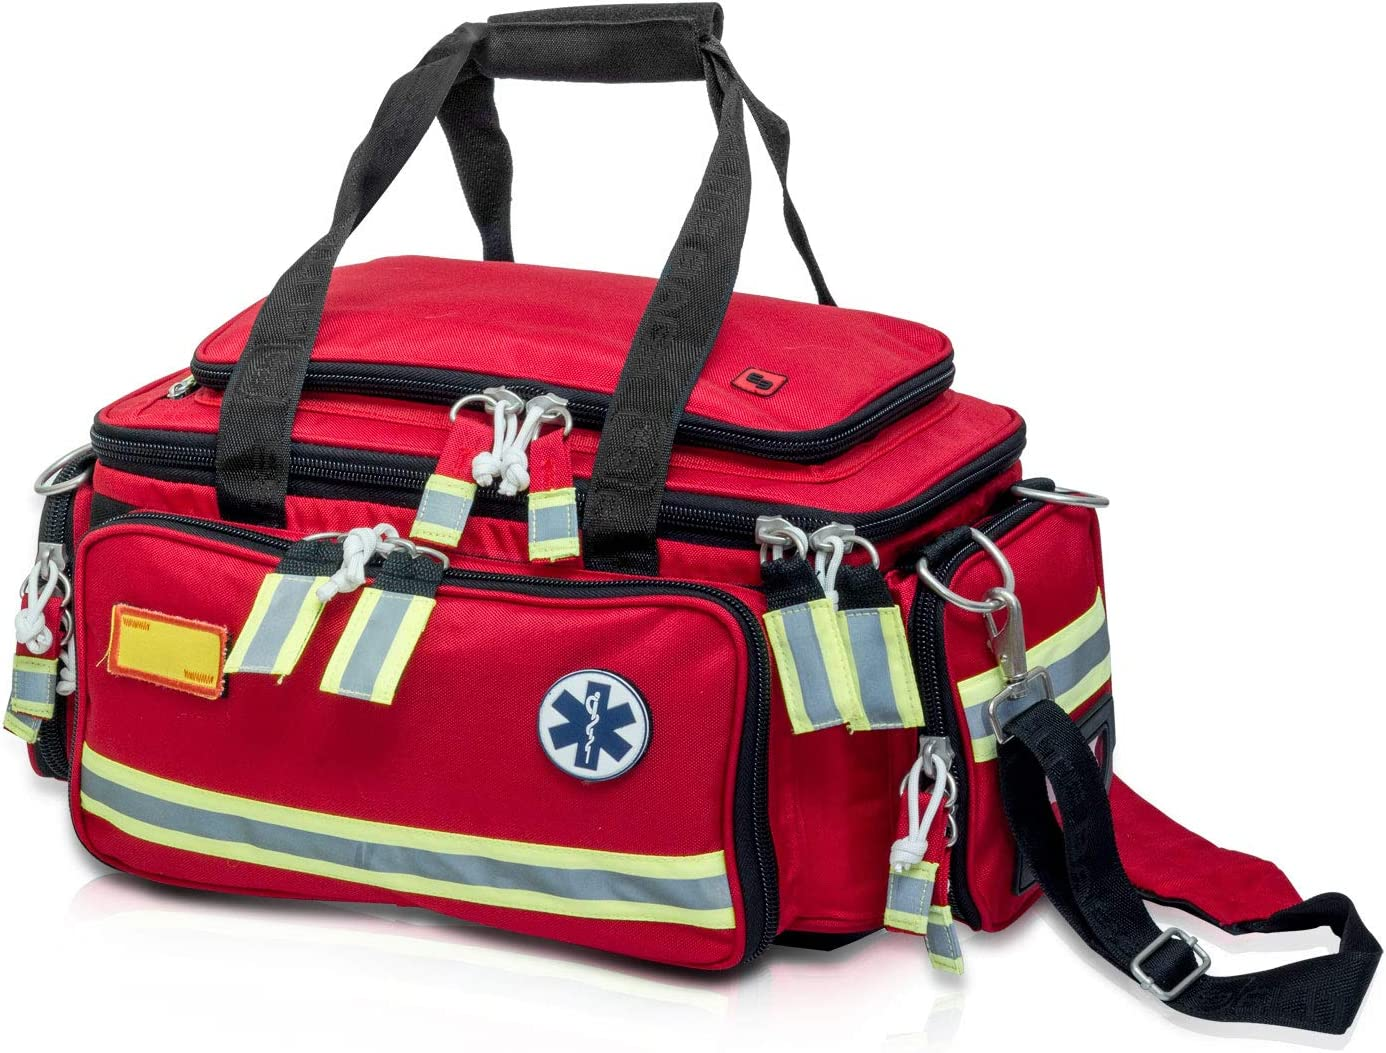 Elite Bags EMS Extreme'S 5 ☆ popular Emergency Life Basic Bag Support Discount is also underway